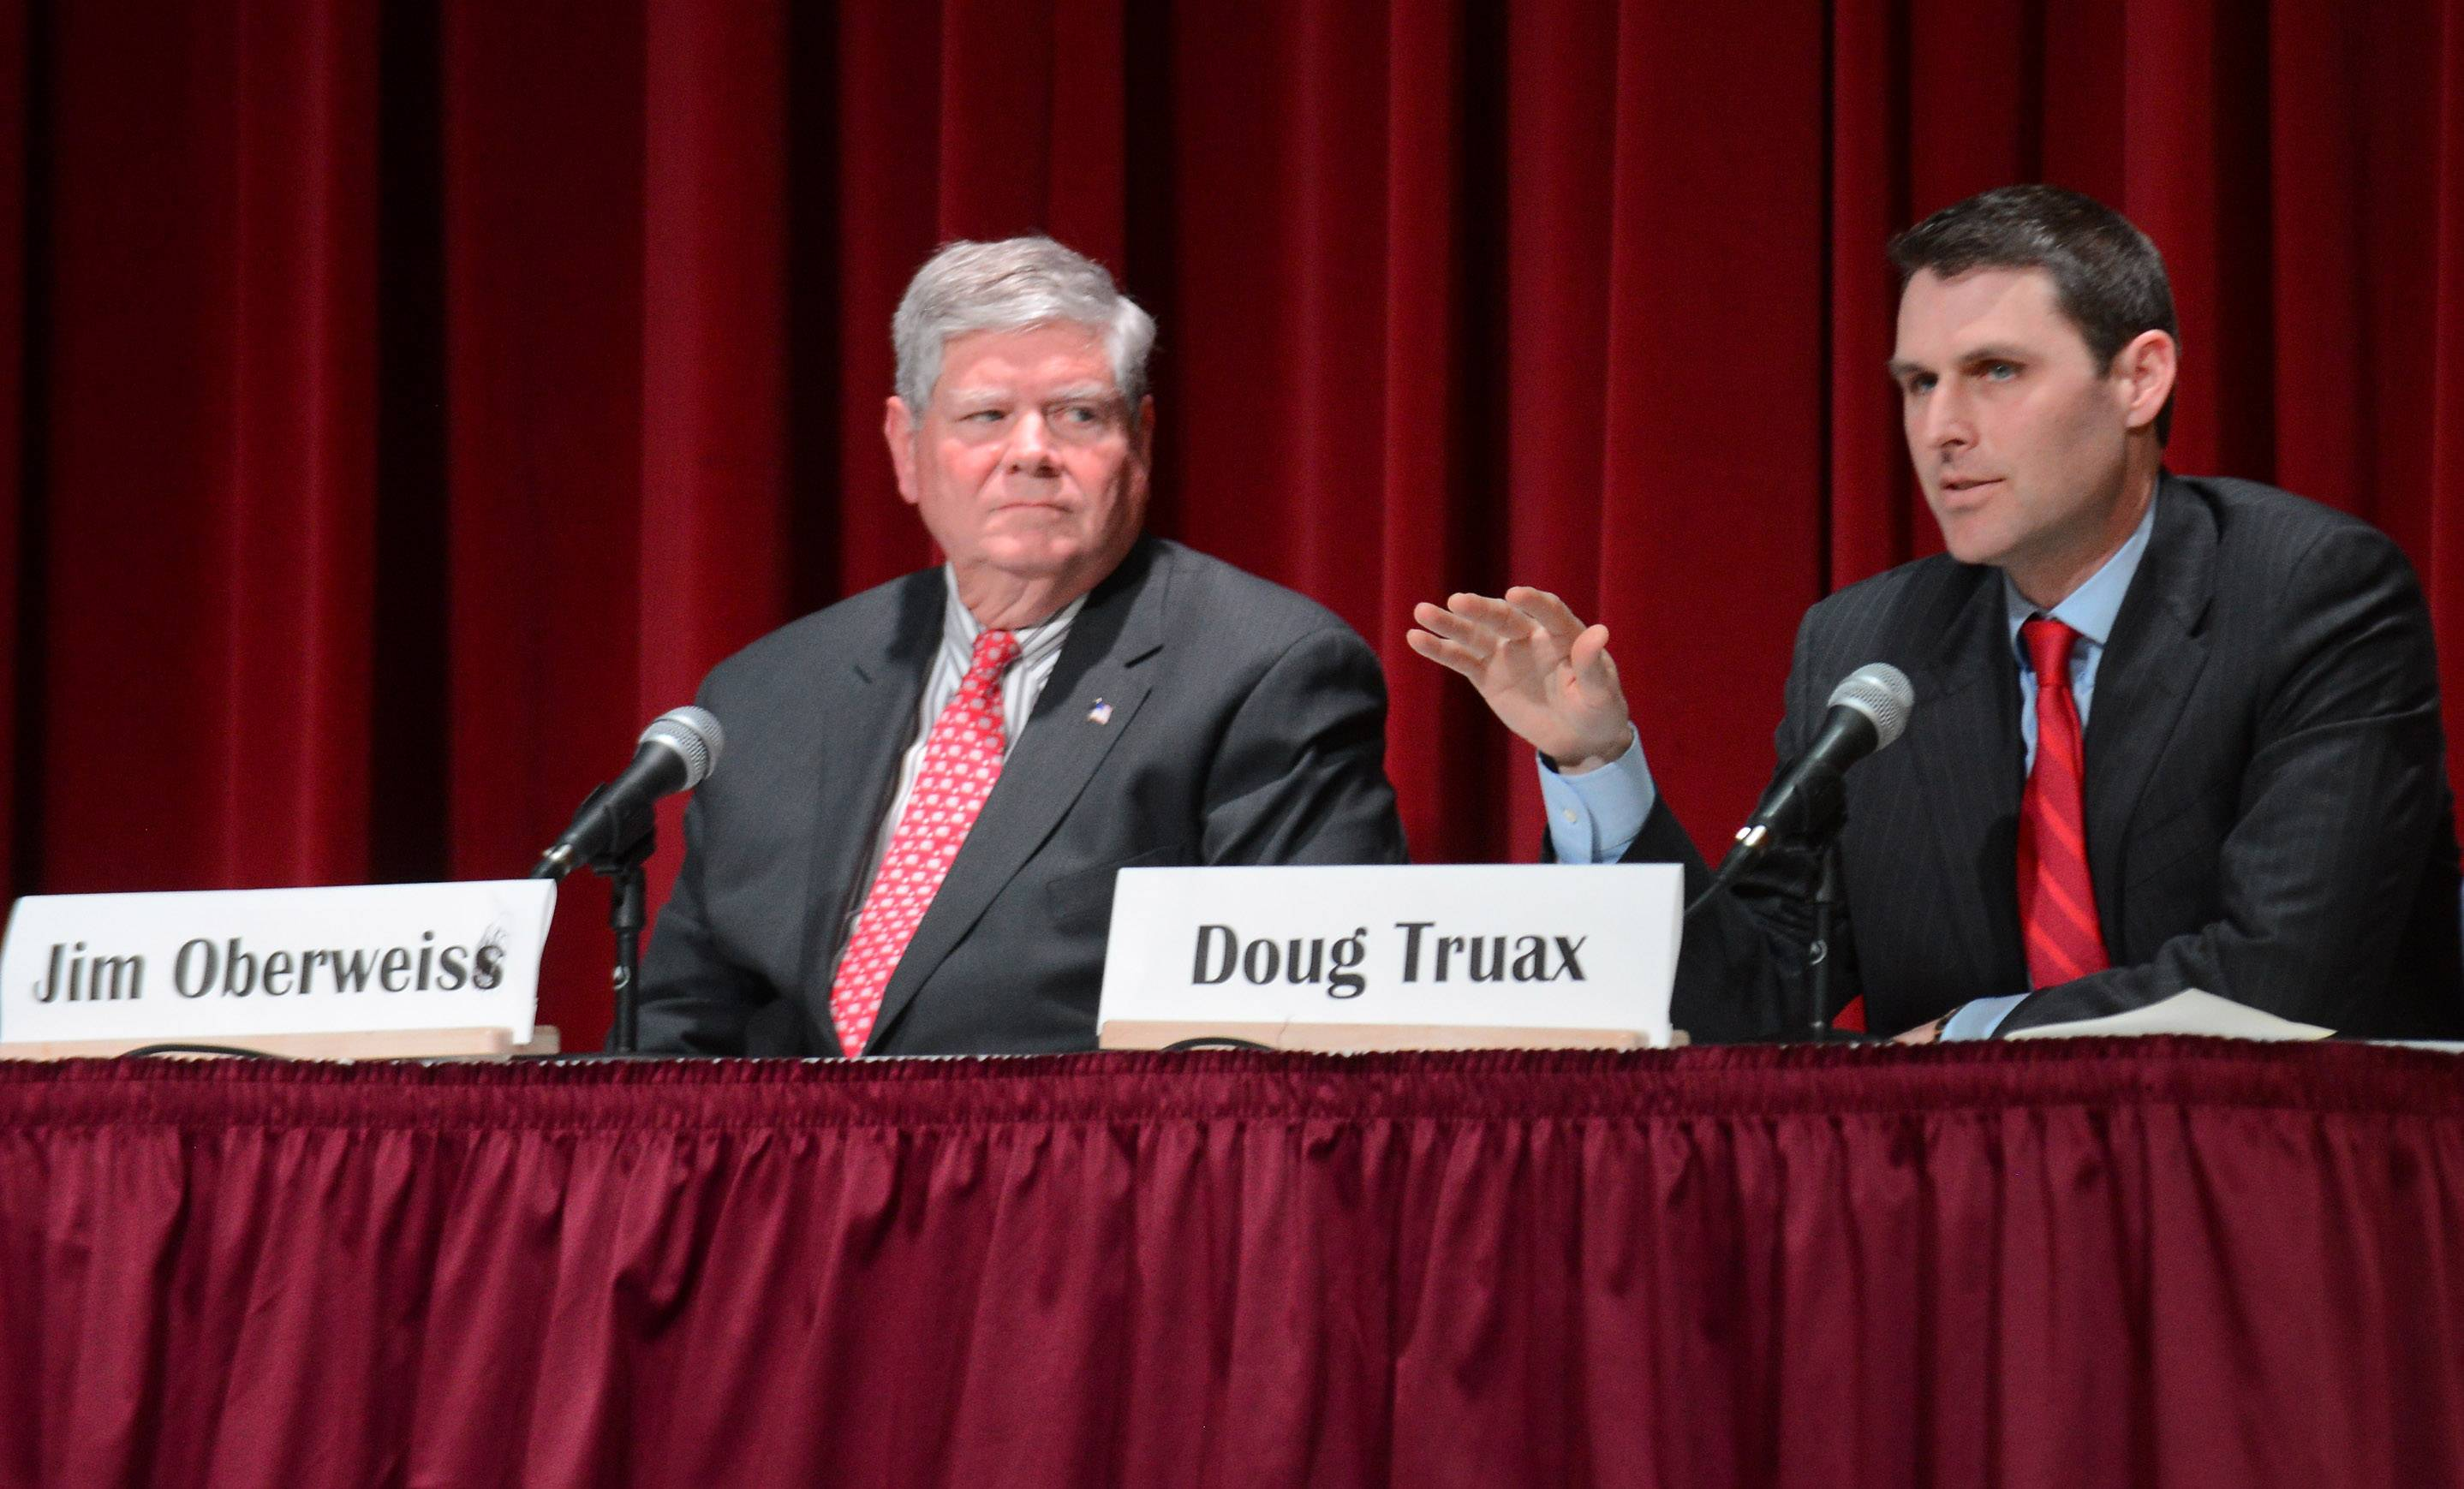 Republican candidates for U.S. Senate Jim Oberweis, left, and Doug Truax both oppose the new federal health care law, but Oberweis believes instead of merely repealing it, leaders should replace it with one that drives down insurance costs.